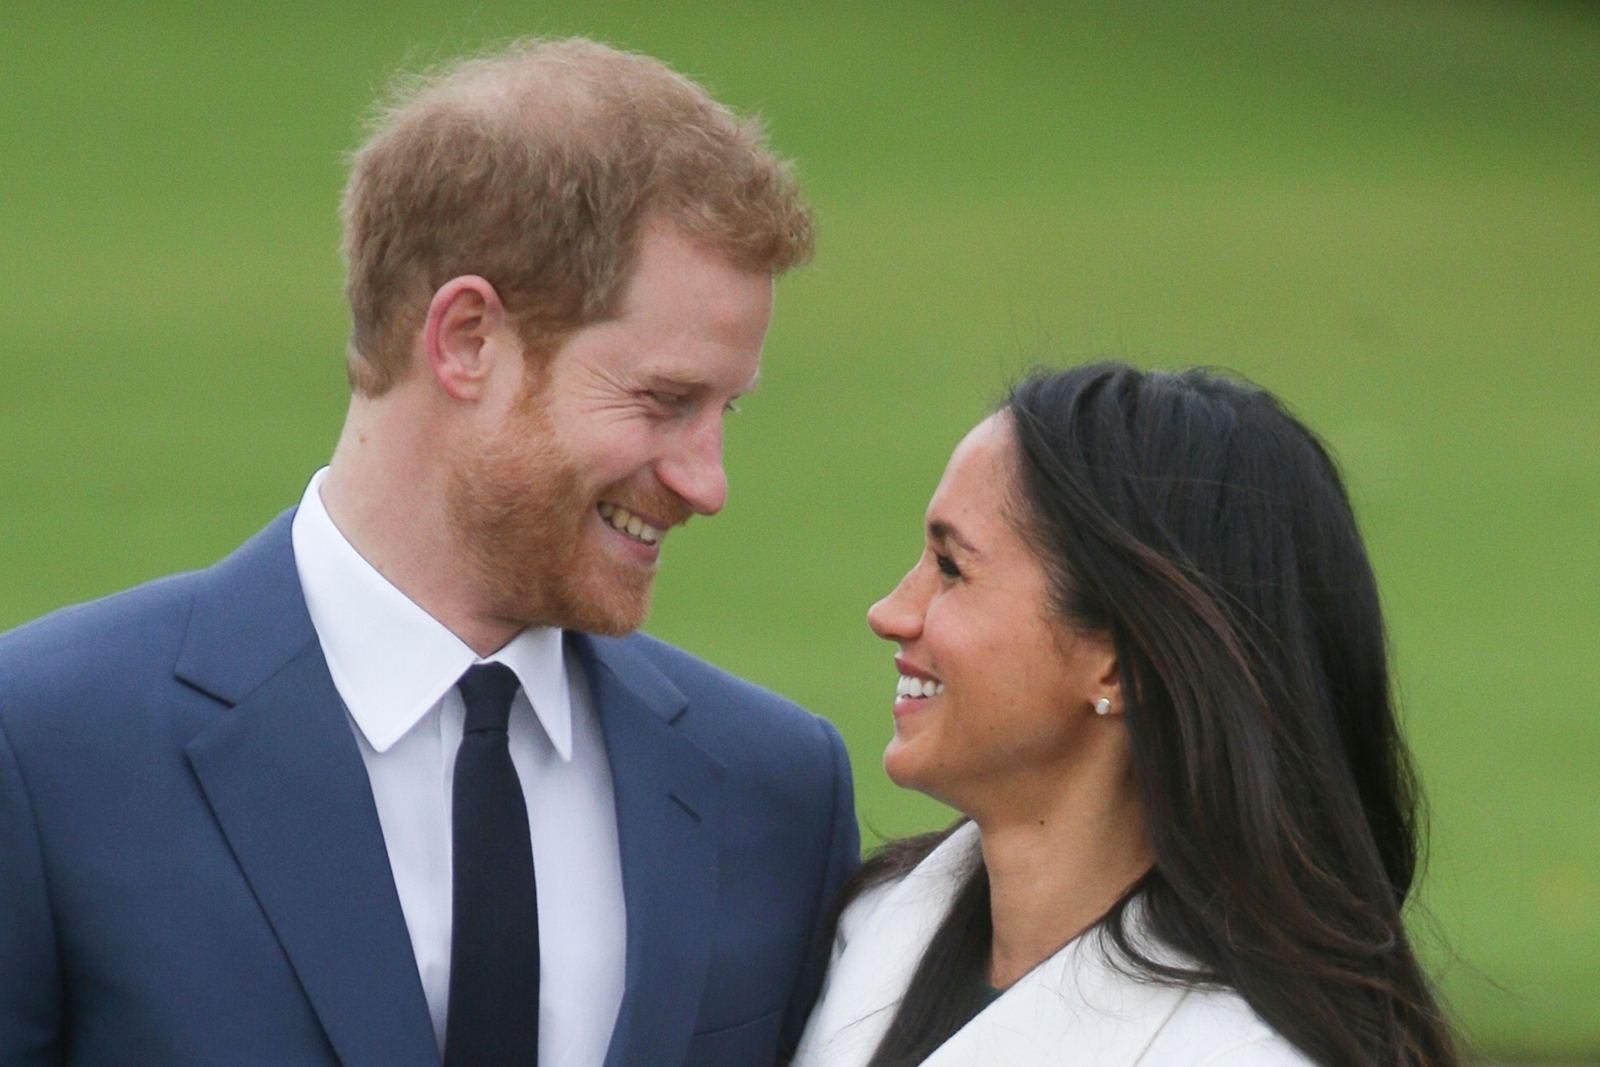 Pubs could stay open until 1am for Harry and Meghan's royal wedding